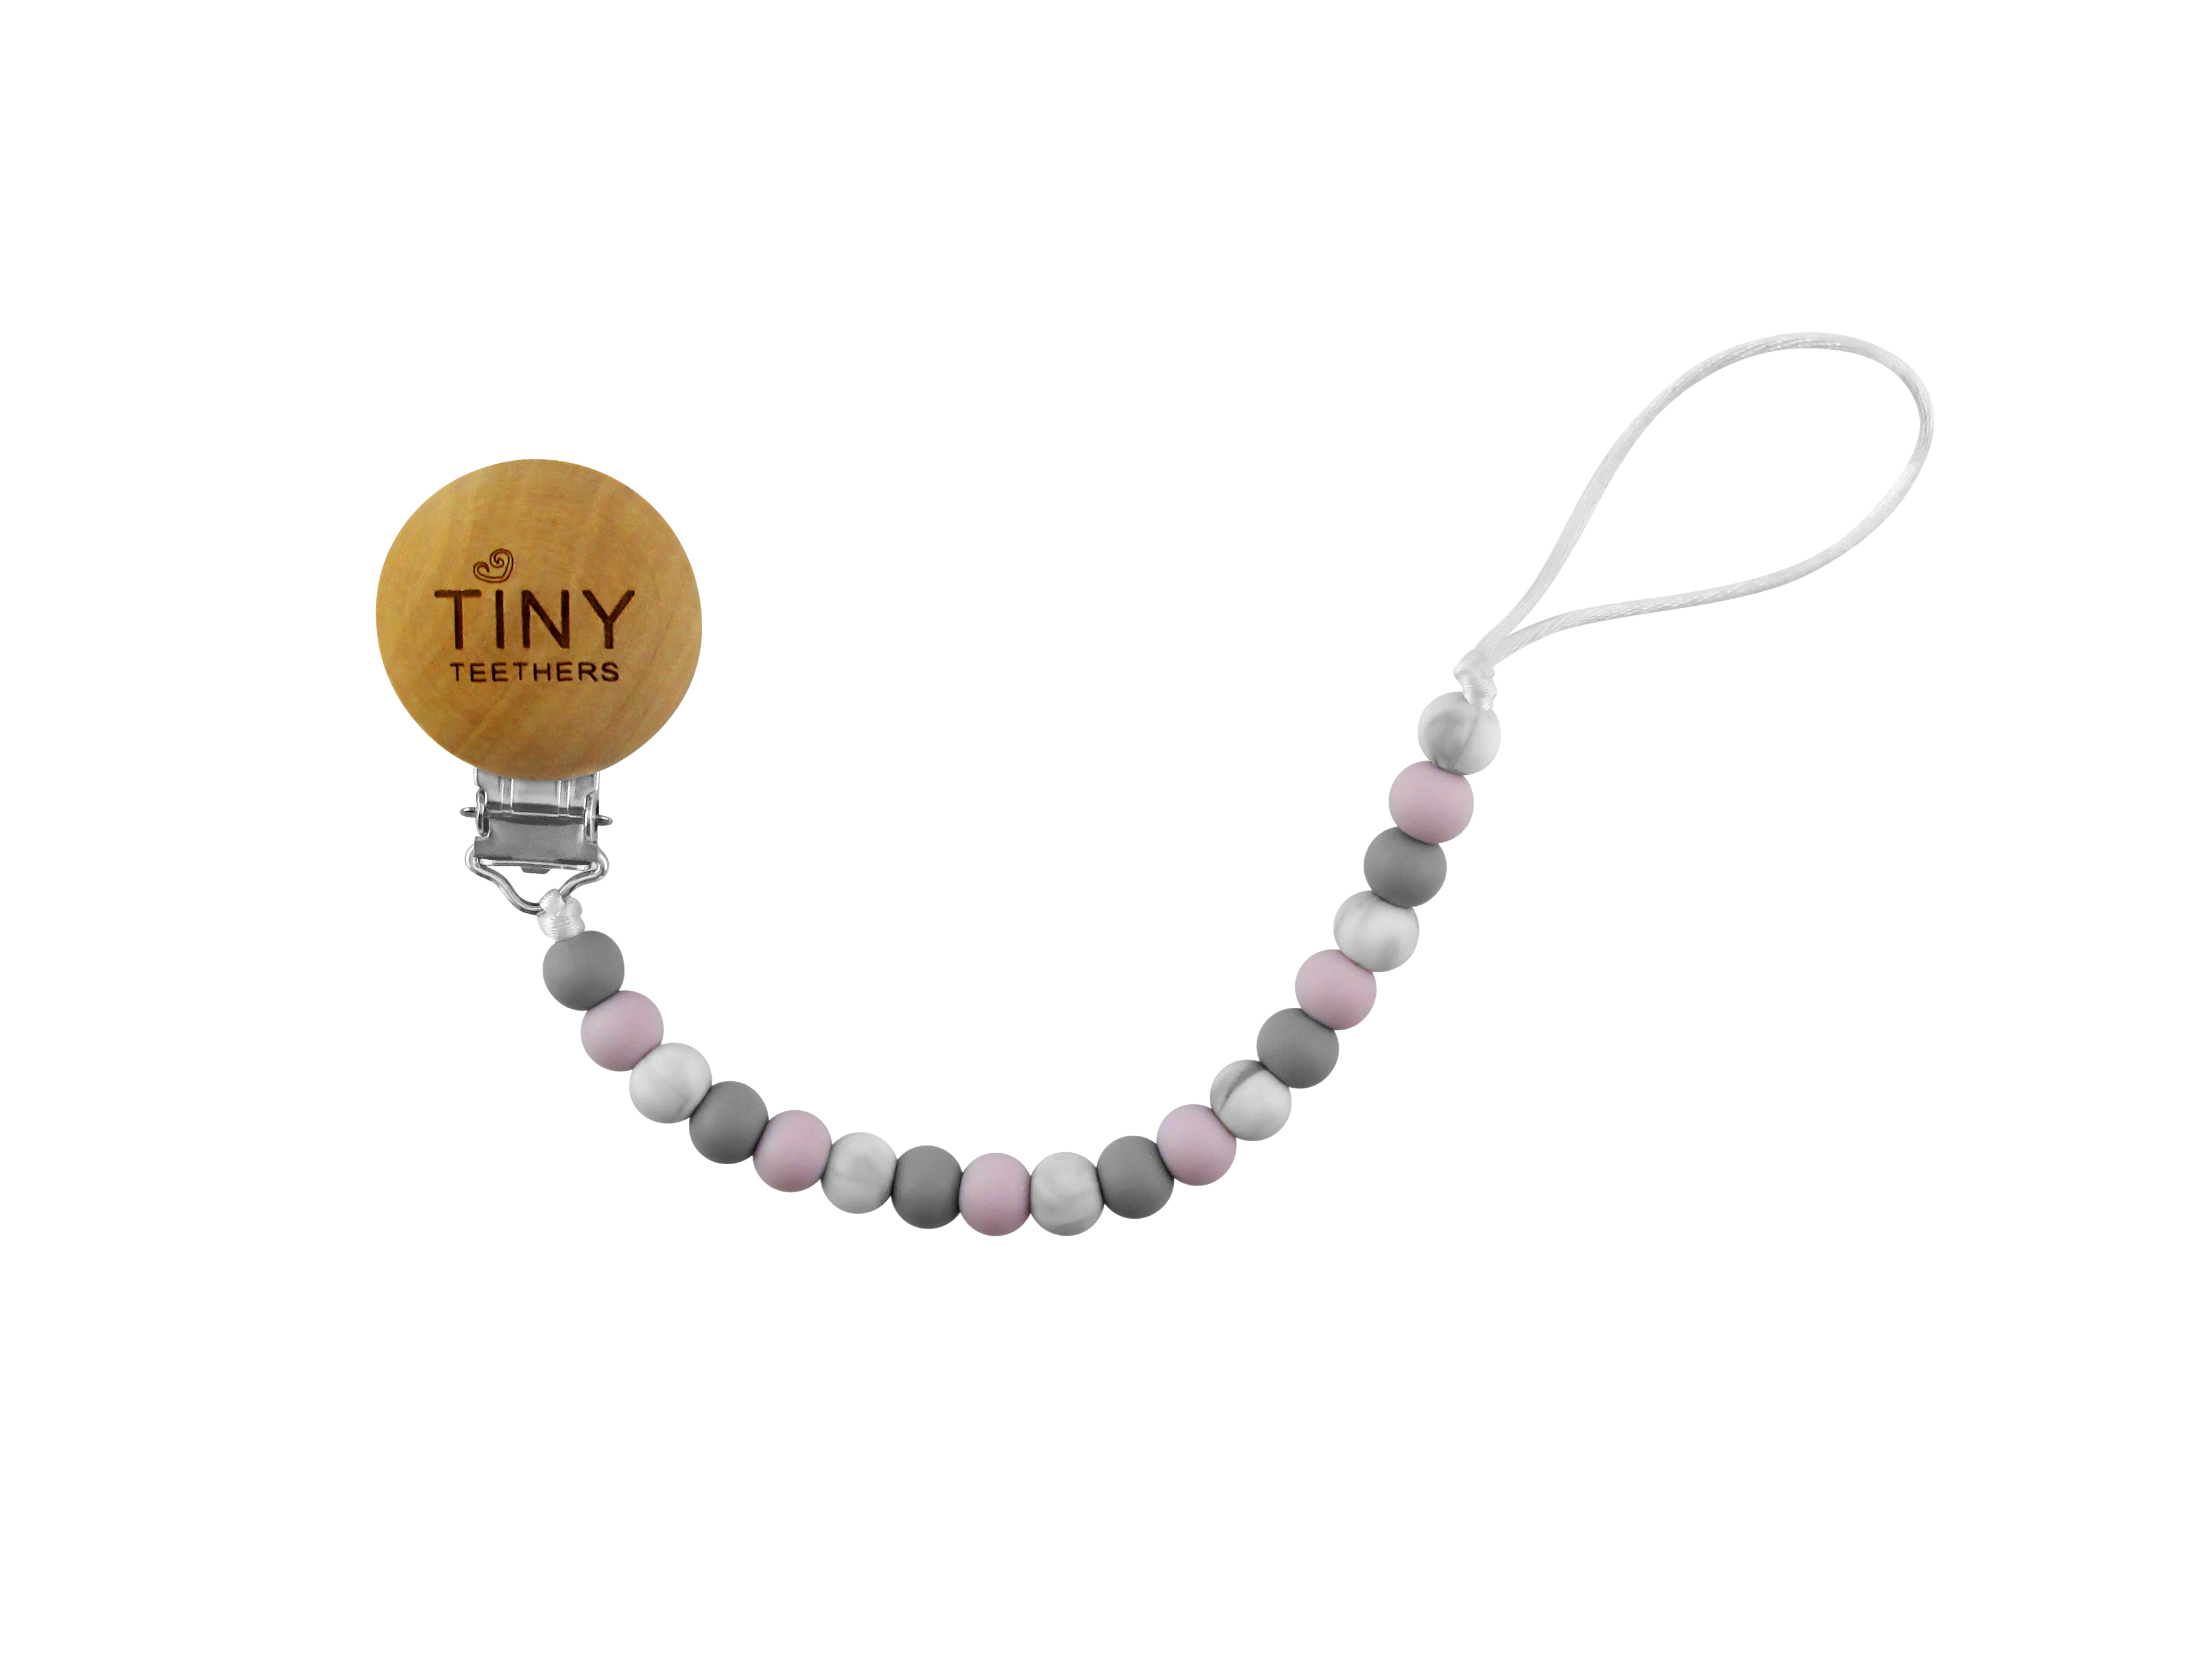 TINY TEETHERS PAC026 PACIFIER CLIP GRAY LAVENDER MARBLE BEADS